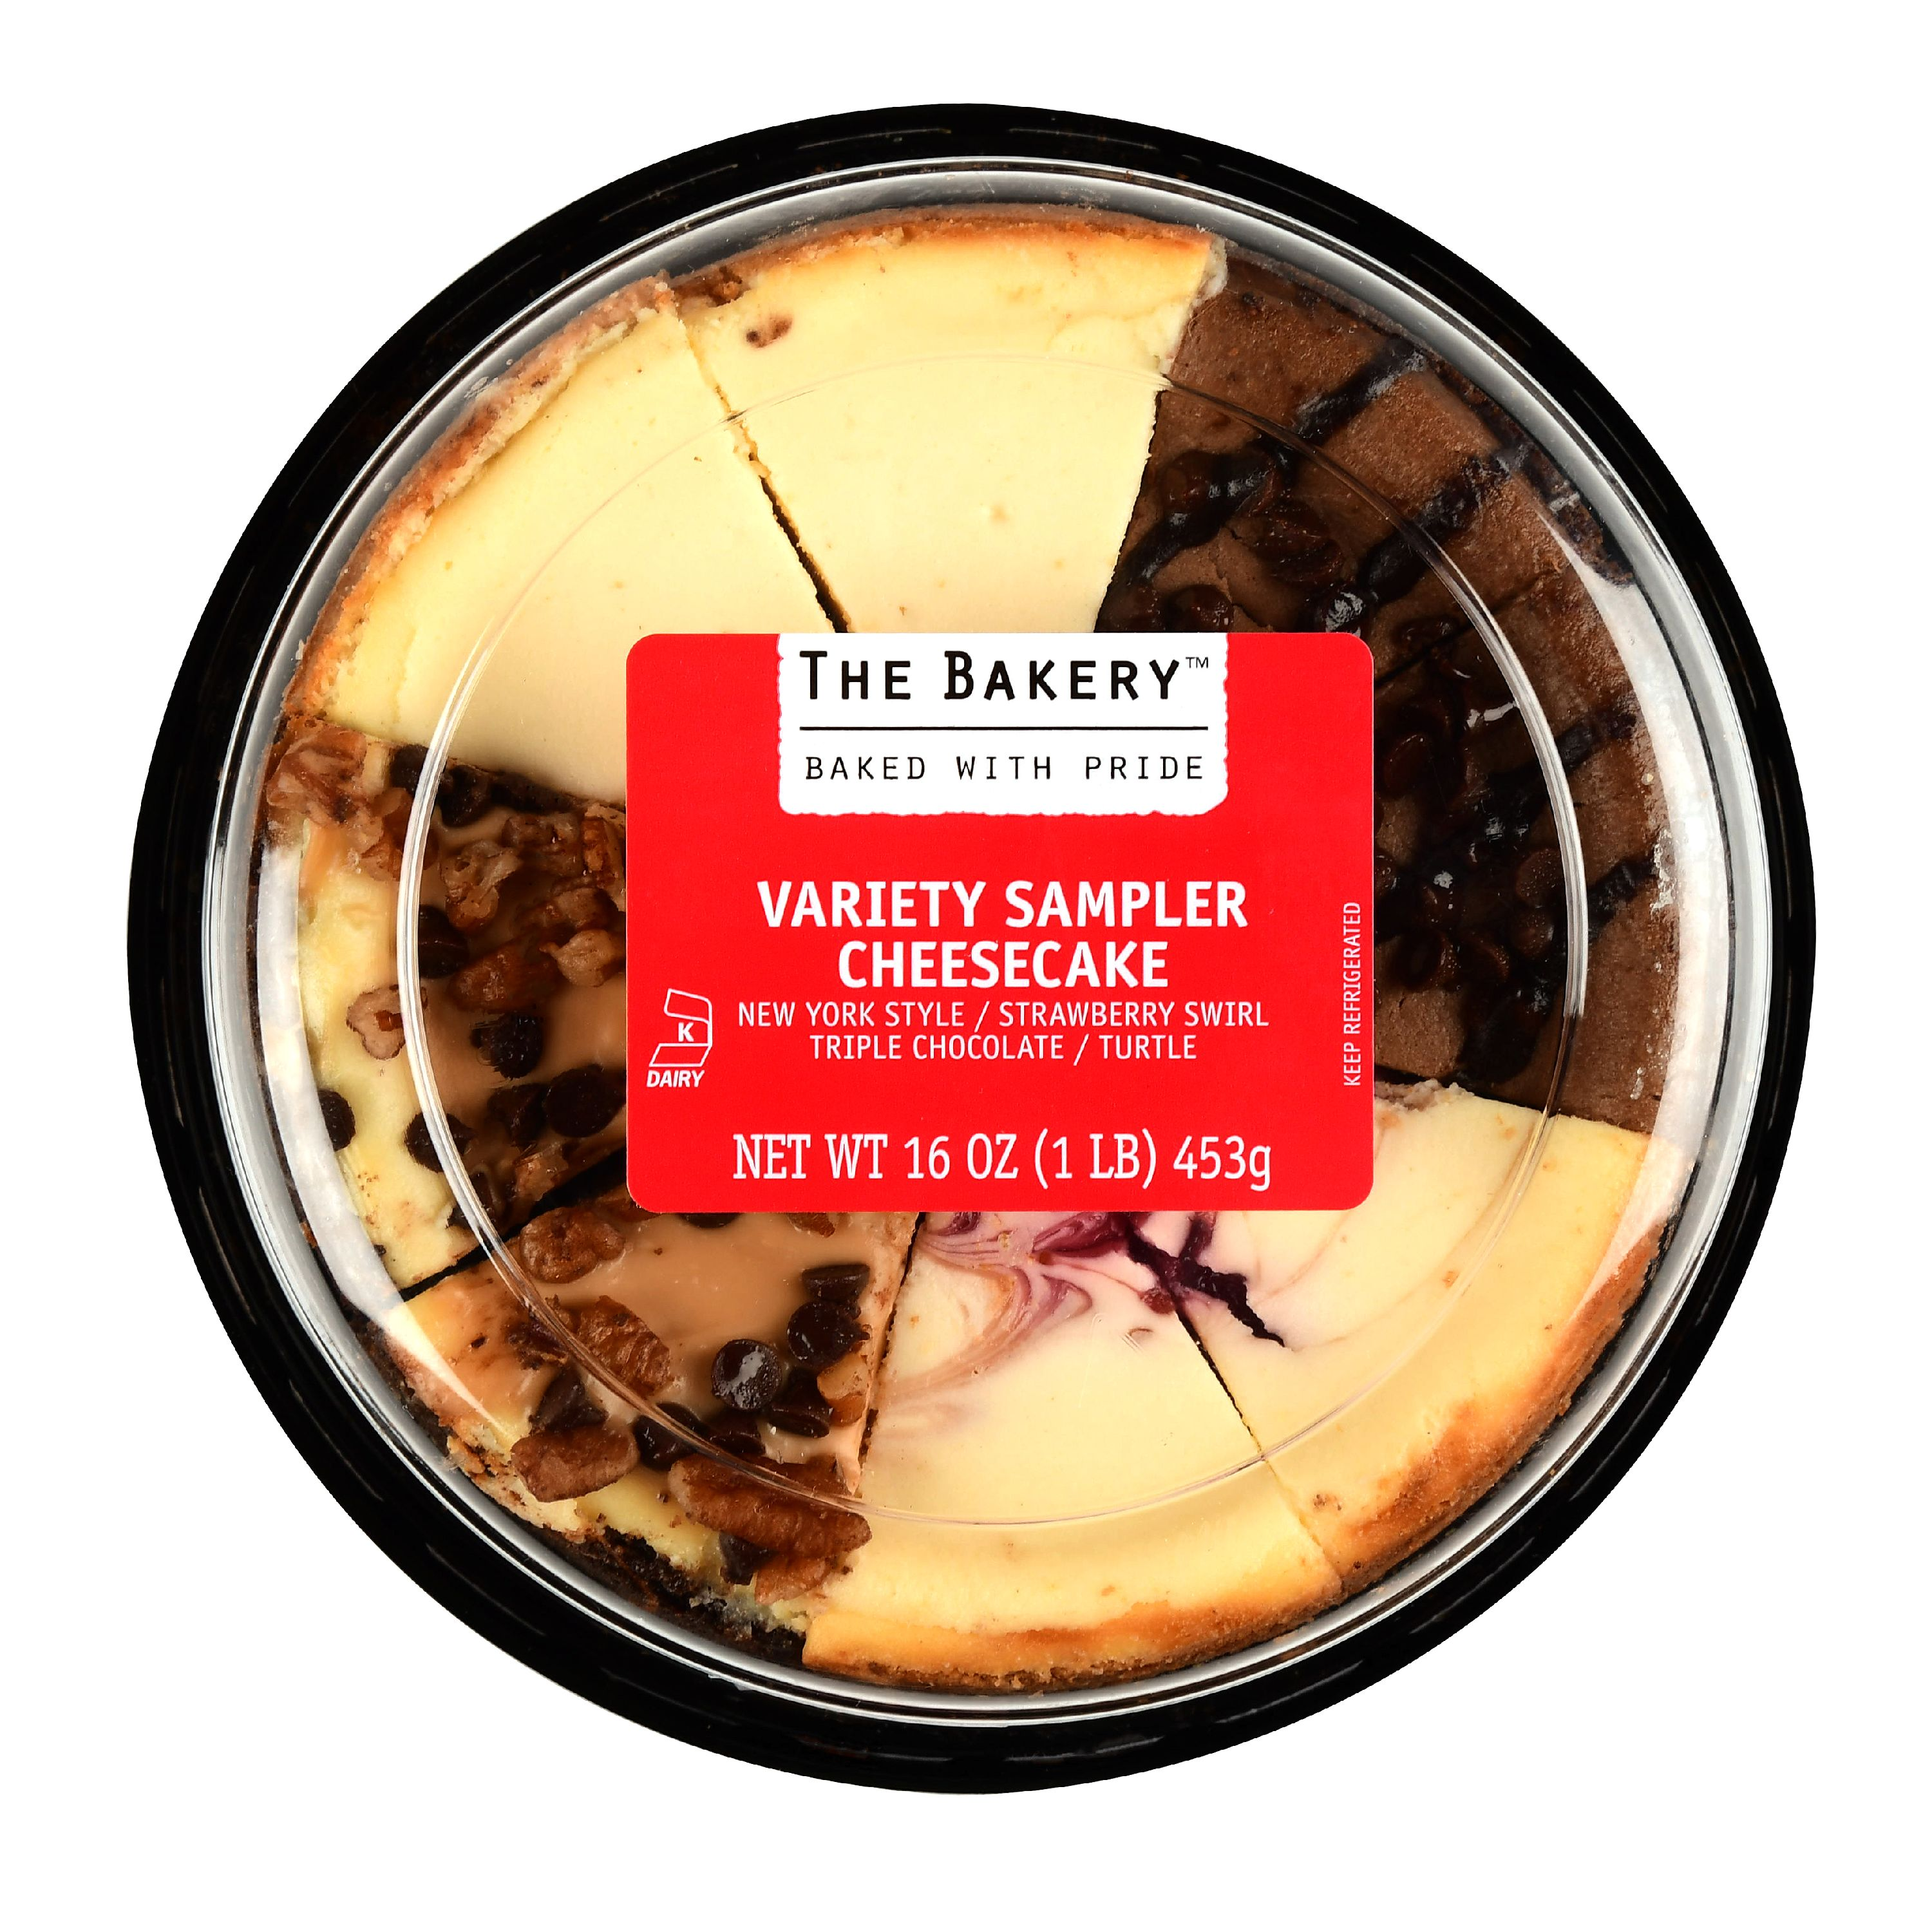 The Bakery Variety Sampler Cheesecake, Strawberry Swirl/Turtle/Triple Chocolate/New York Style, 16 oz, 8 Count